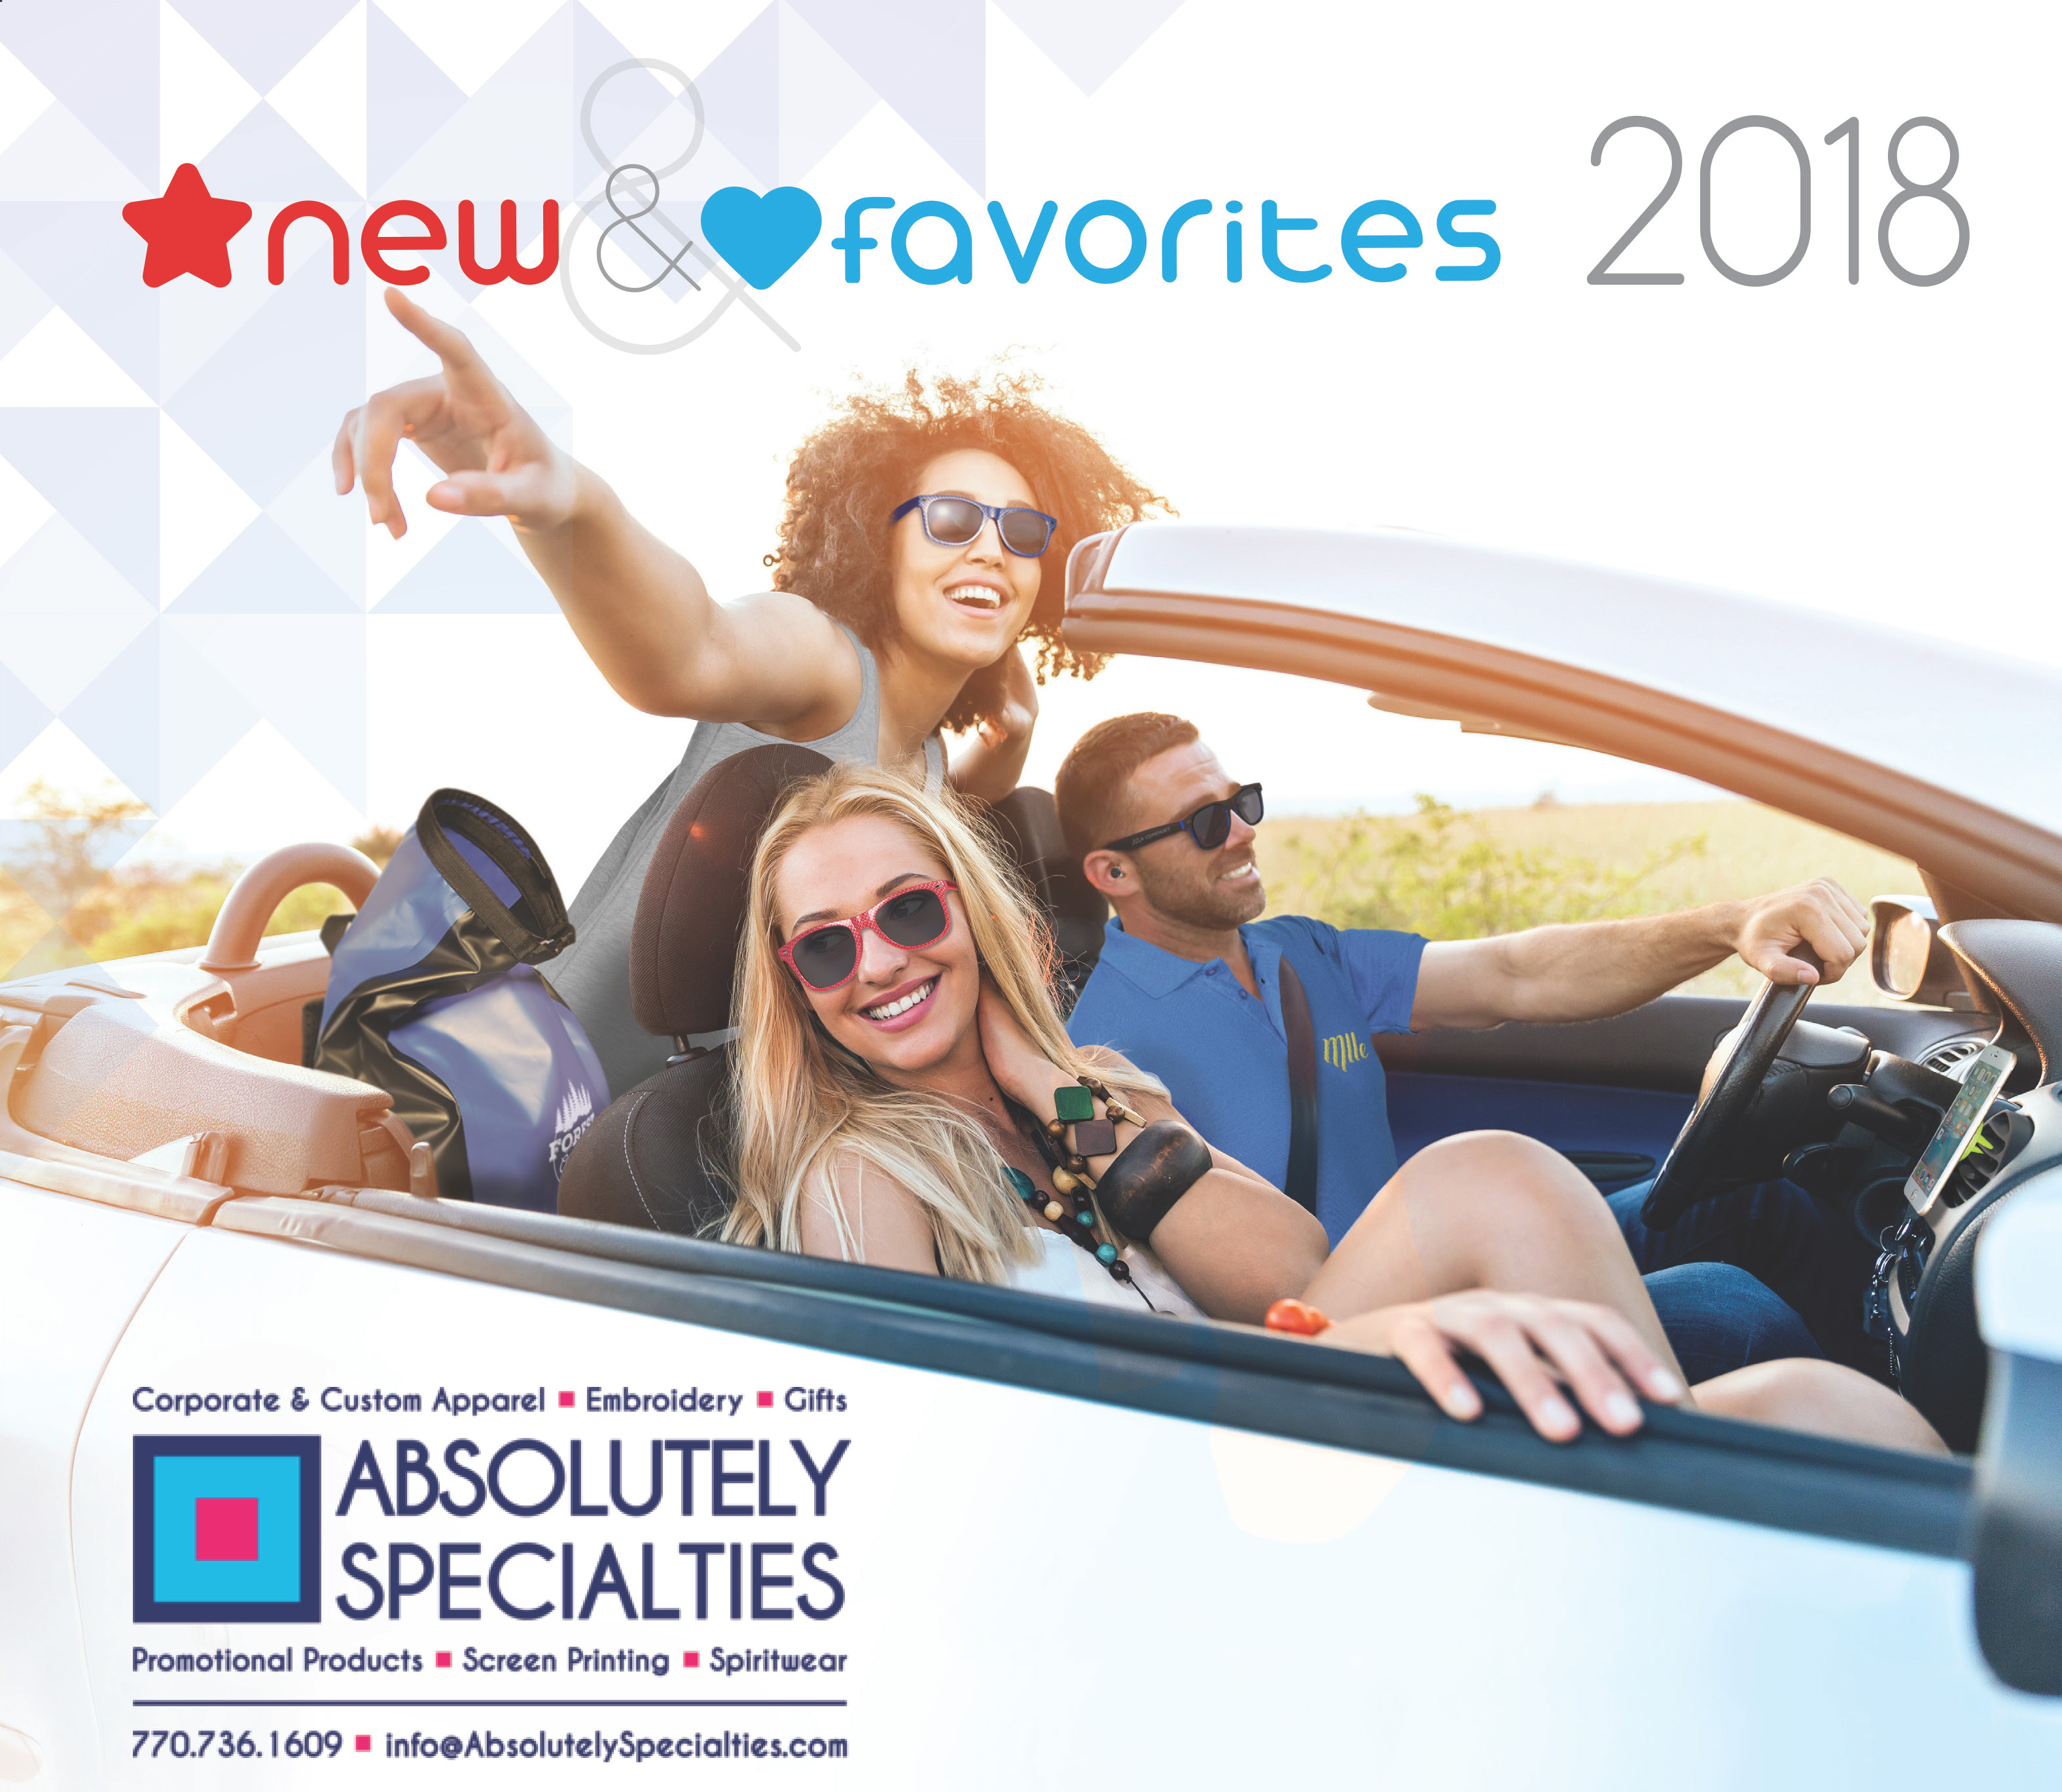 Absolutely Specialties Promotional Products 2018